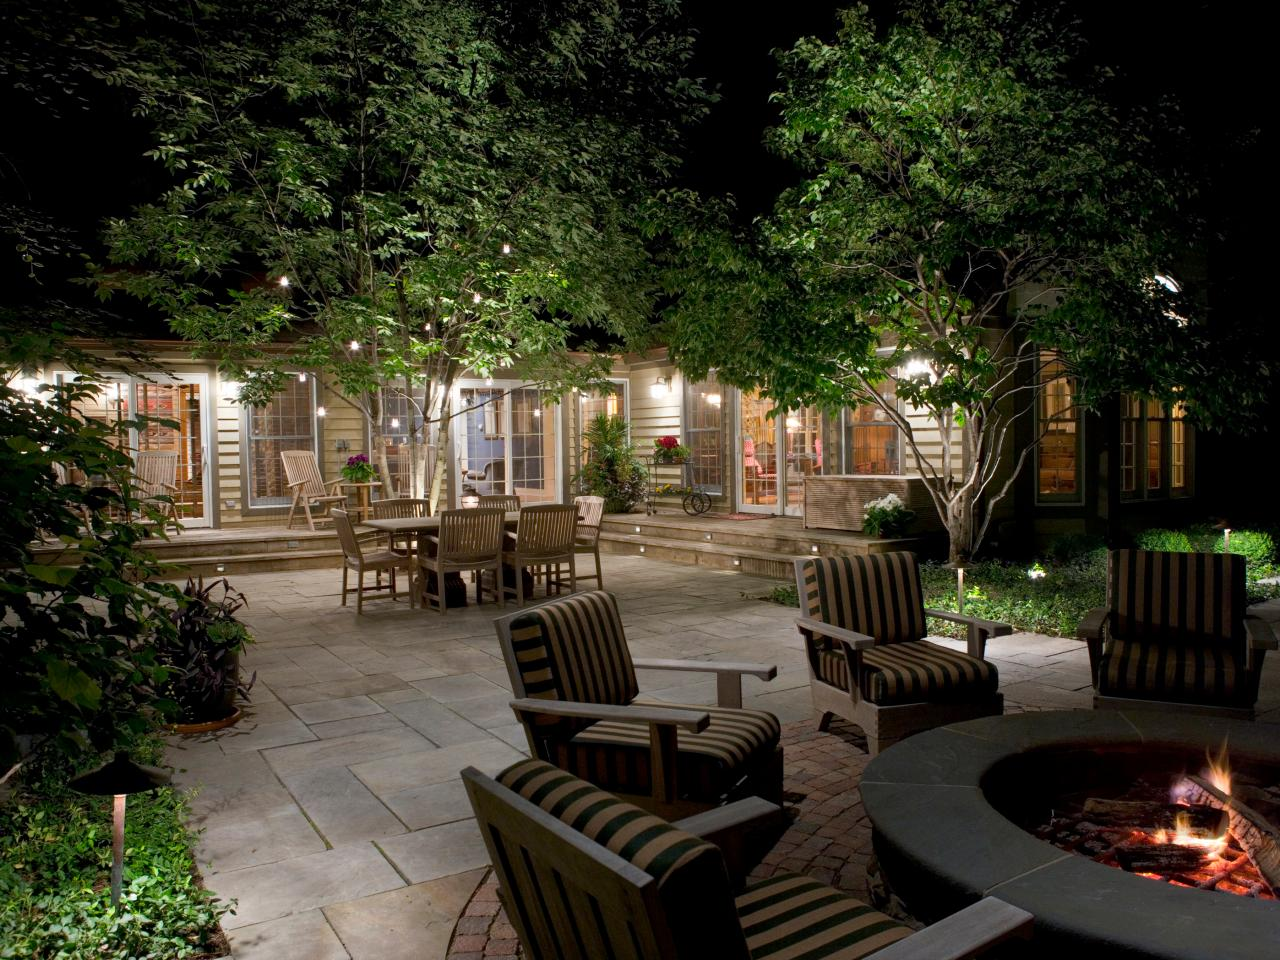 Mansfield-Arlington TX Landscape Designs & Outdoor Living Areas-We offer Landscape Design, Outdoor Patios & Pergolas, Outdoor Living Spaces, Stonescapes, Residential & Commercial Landscaping, Irrigation Installation & Repairs, Drainage Systems, Landscape Lighting, Outdoor Living Spaces, Tree Service, Lawn Service, and more.